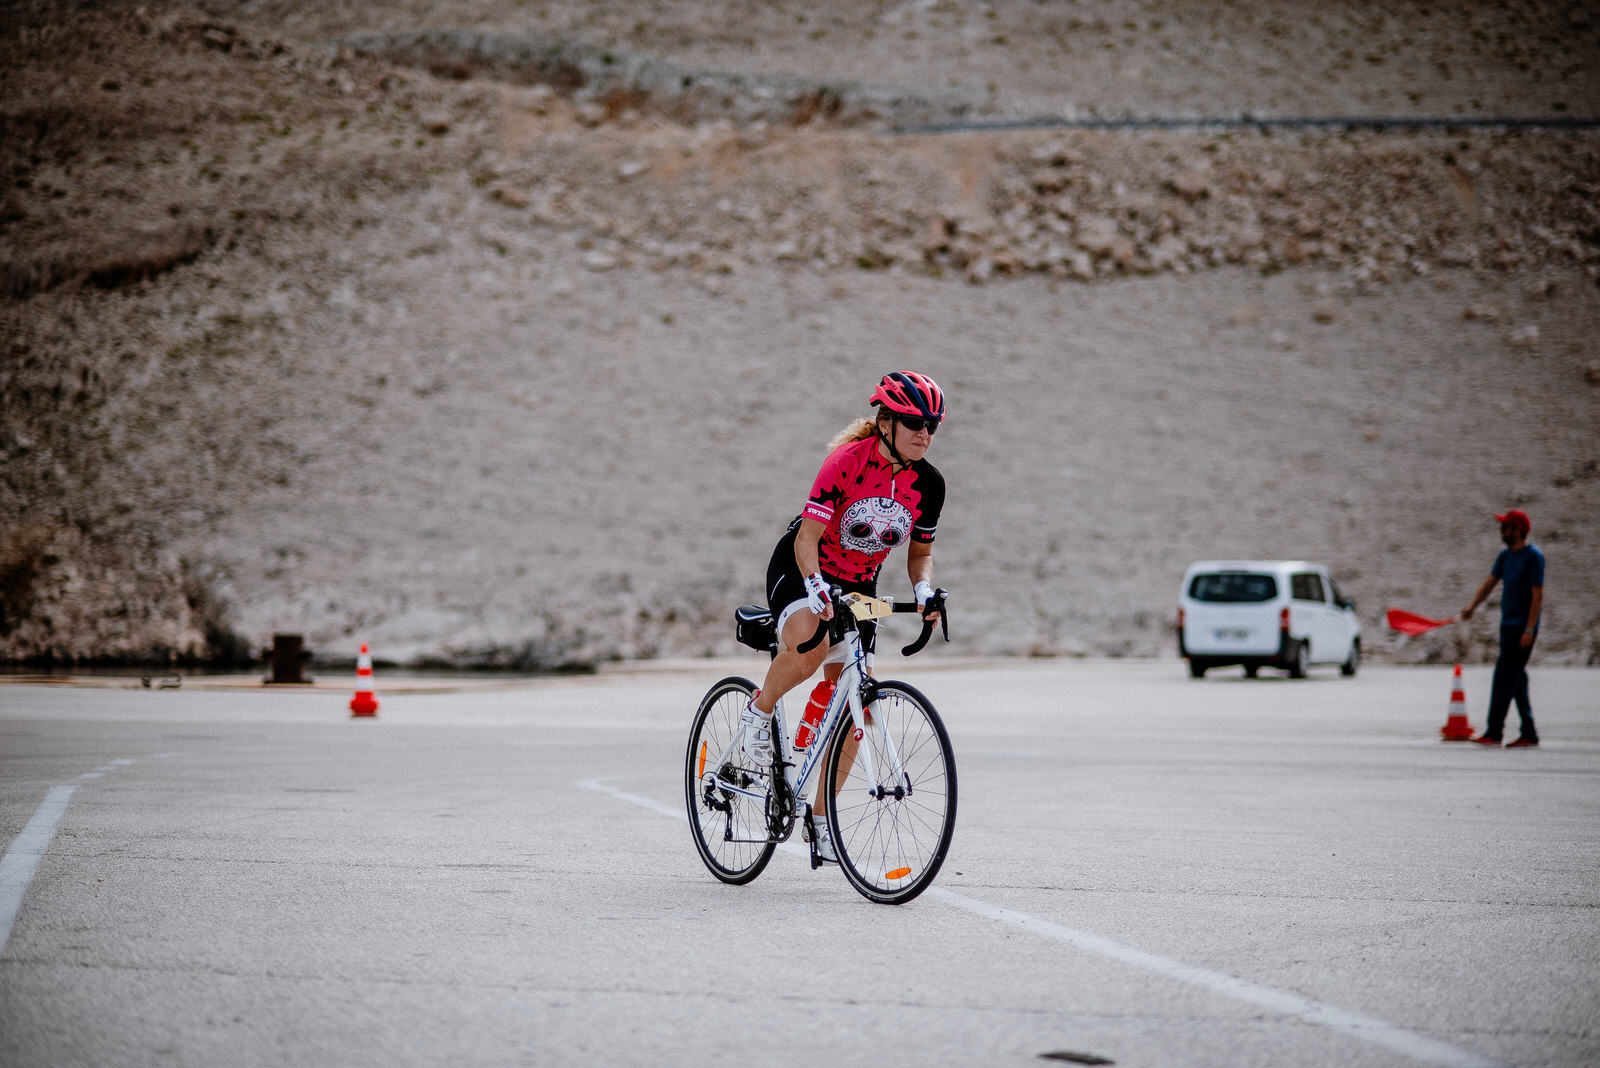 likaclub_Granfondo-Pag-–-Cycling-on-the-Moon_2019-40